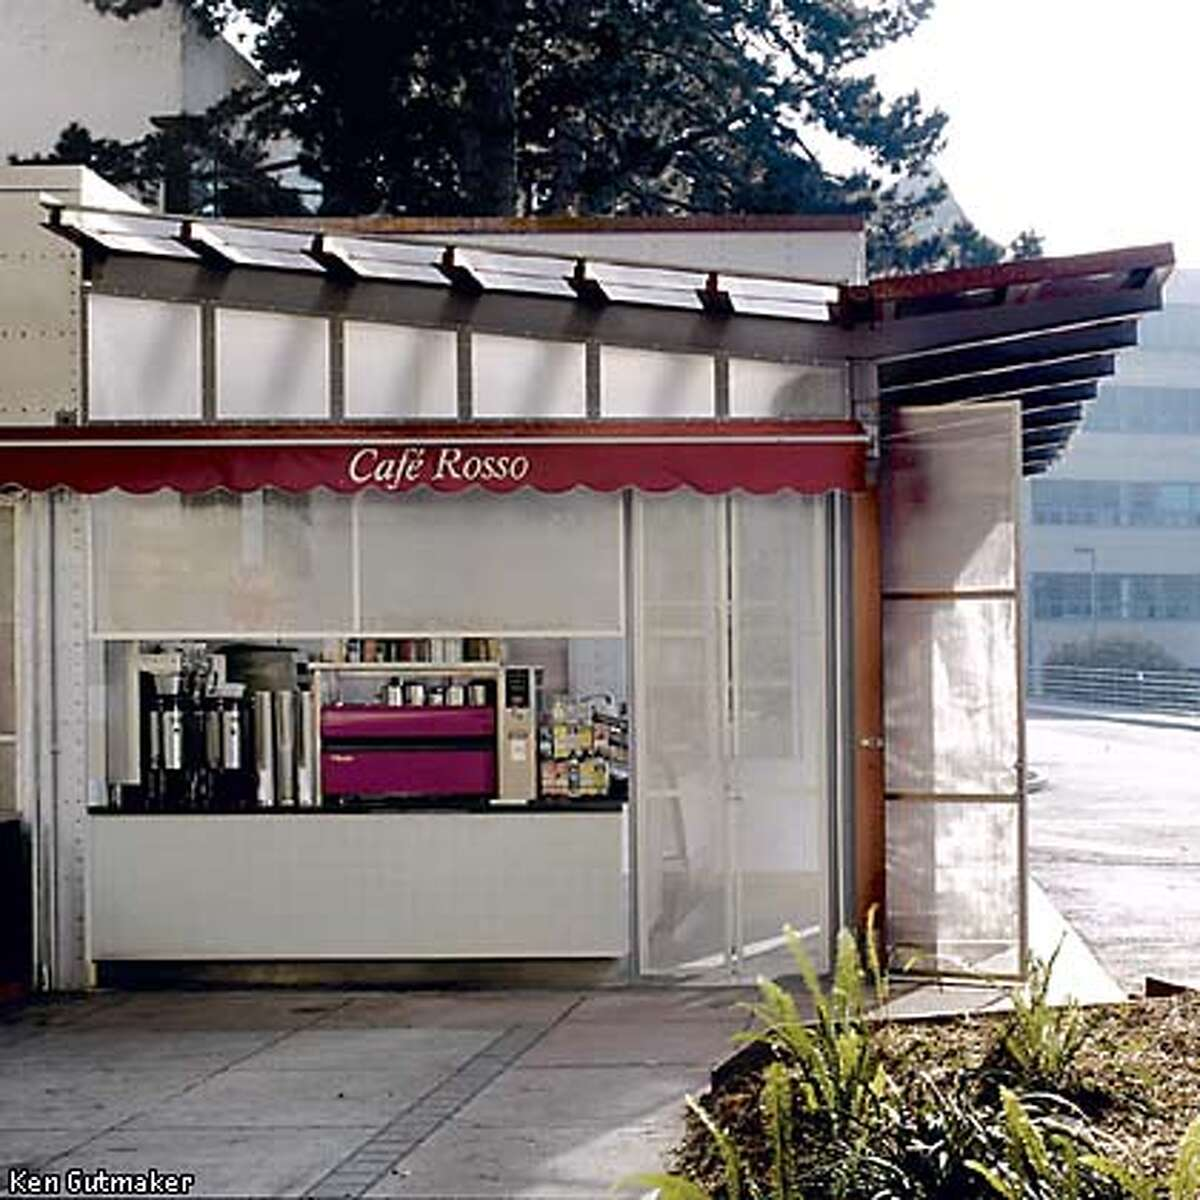 Red signage advertises the cafe name discreetly and the glass, tile and steel details echo dorm buildings nearby. Photo by Ken Gutmaker